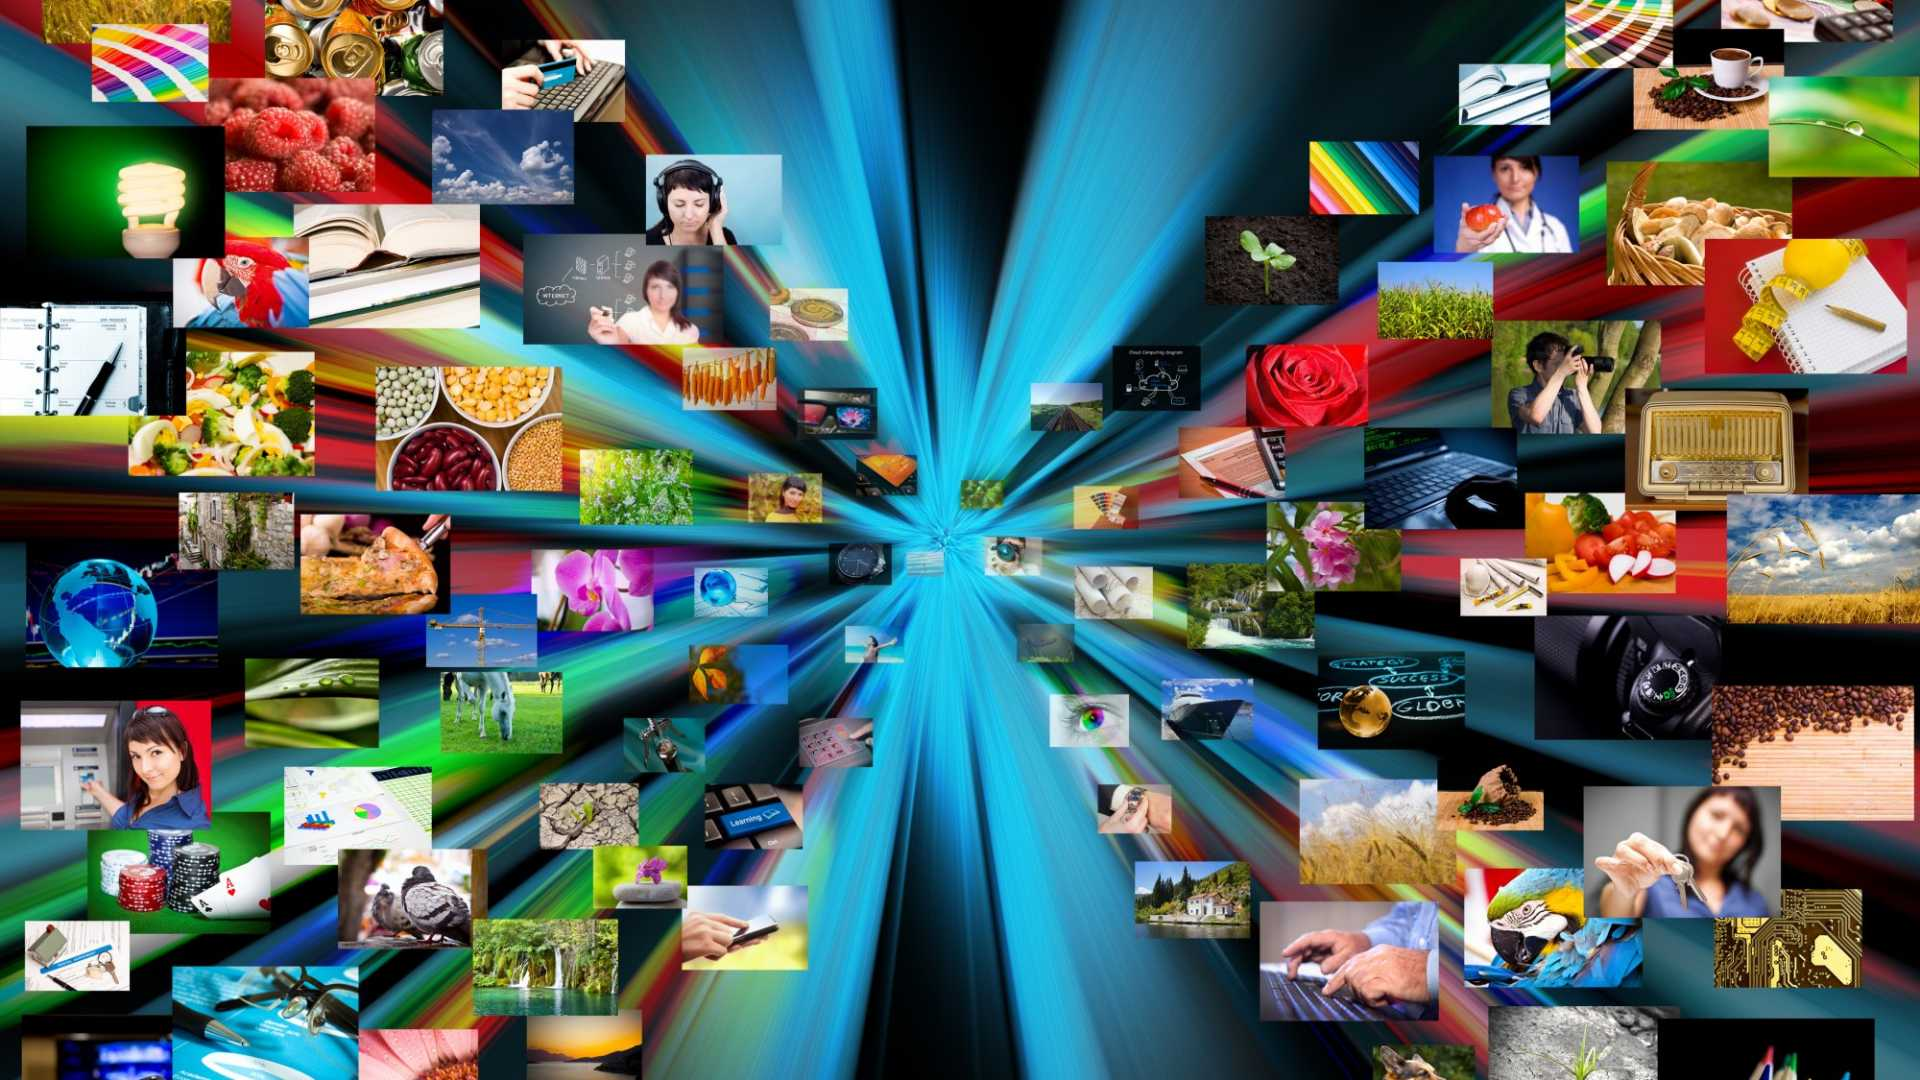 Study Shows Branded Social Media Videos Influence Consumer Opinion and Behavior